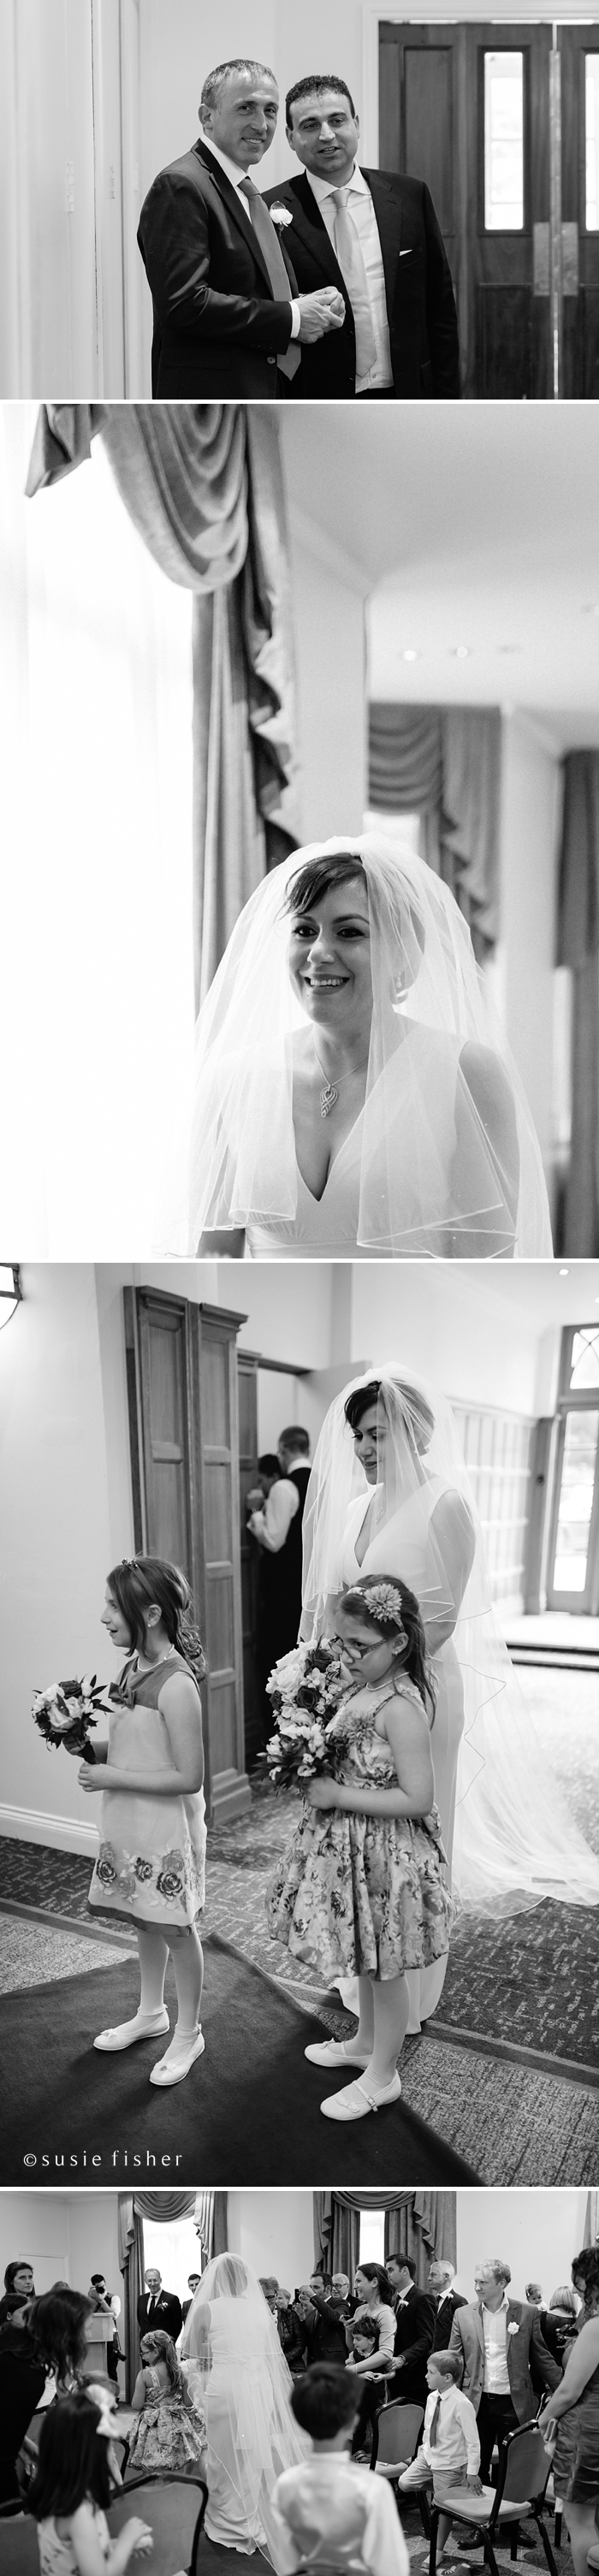 Oatlands Park Hotel Wedding Photography_Copyright Susie Fisher.jpg